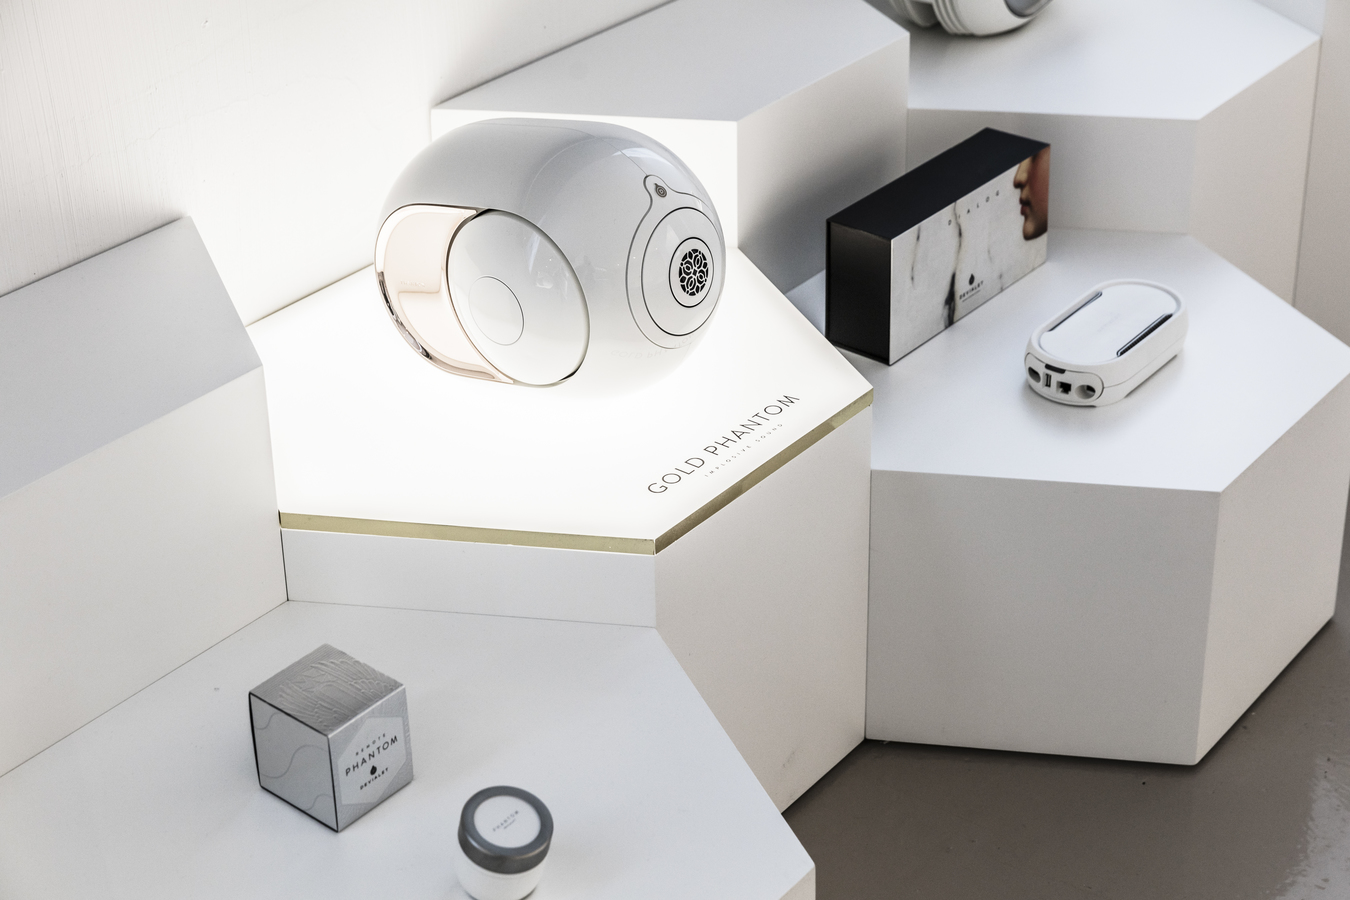 Devialet's Gold Phantom and accessories